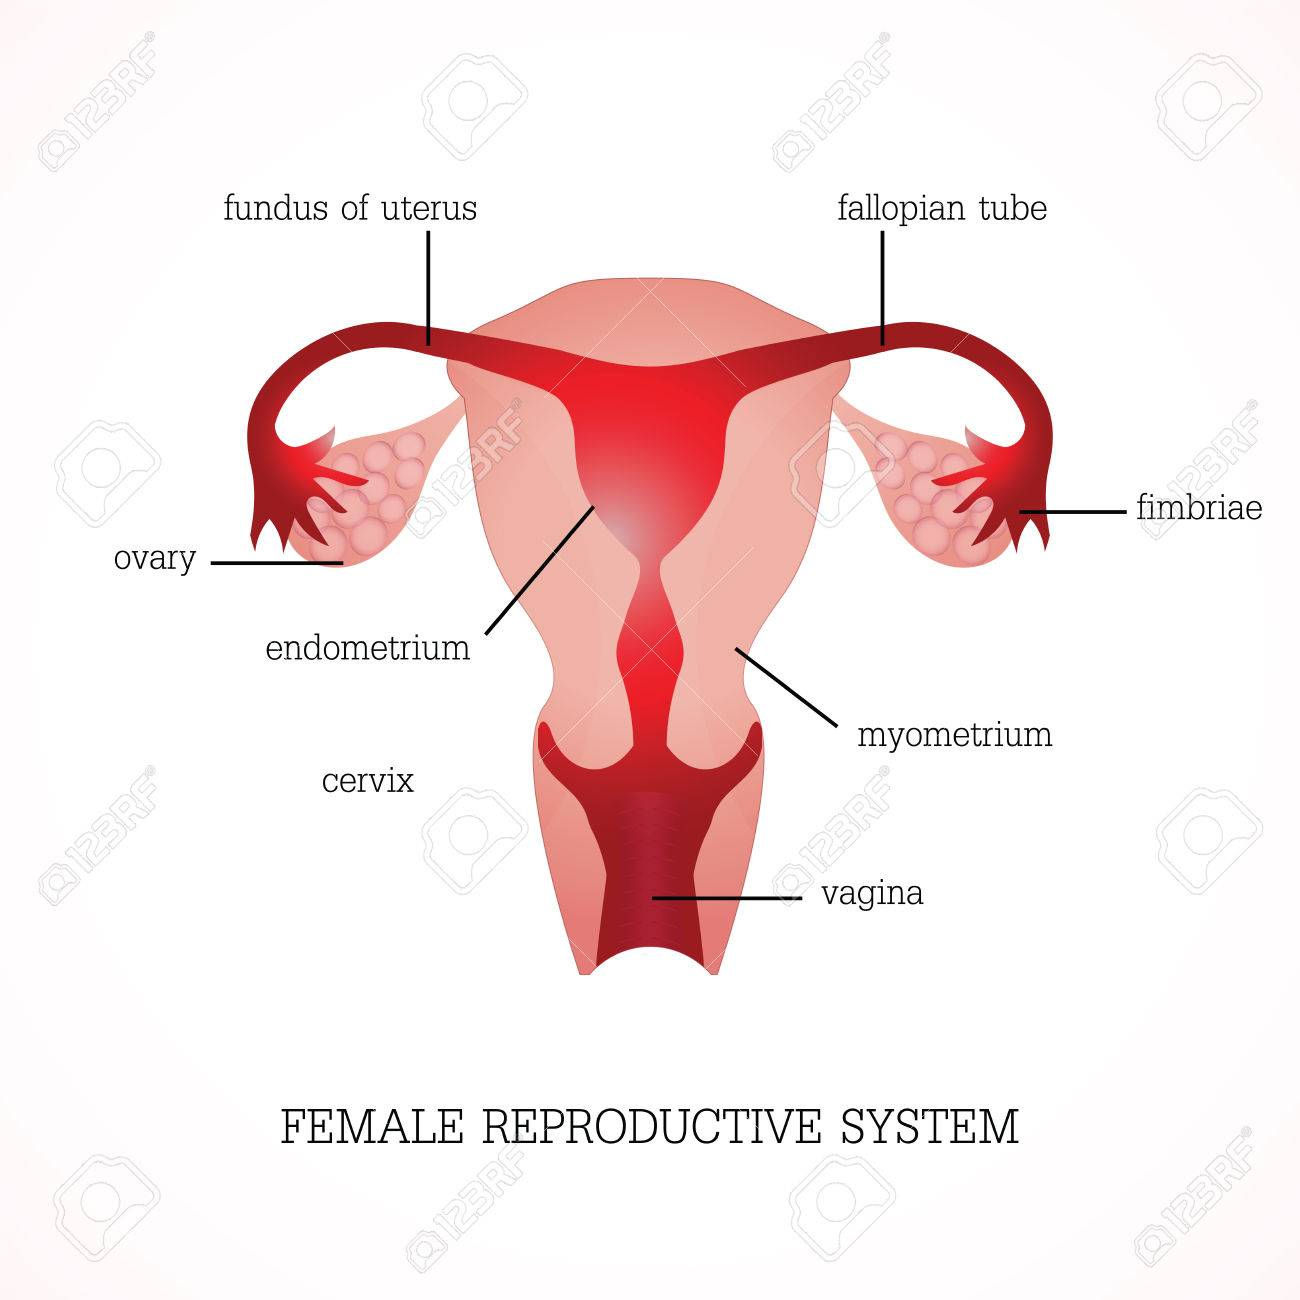 Structure And Function Of Human Female Reproductive Anatomy System ...